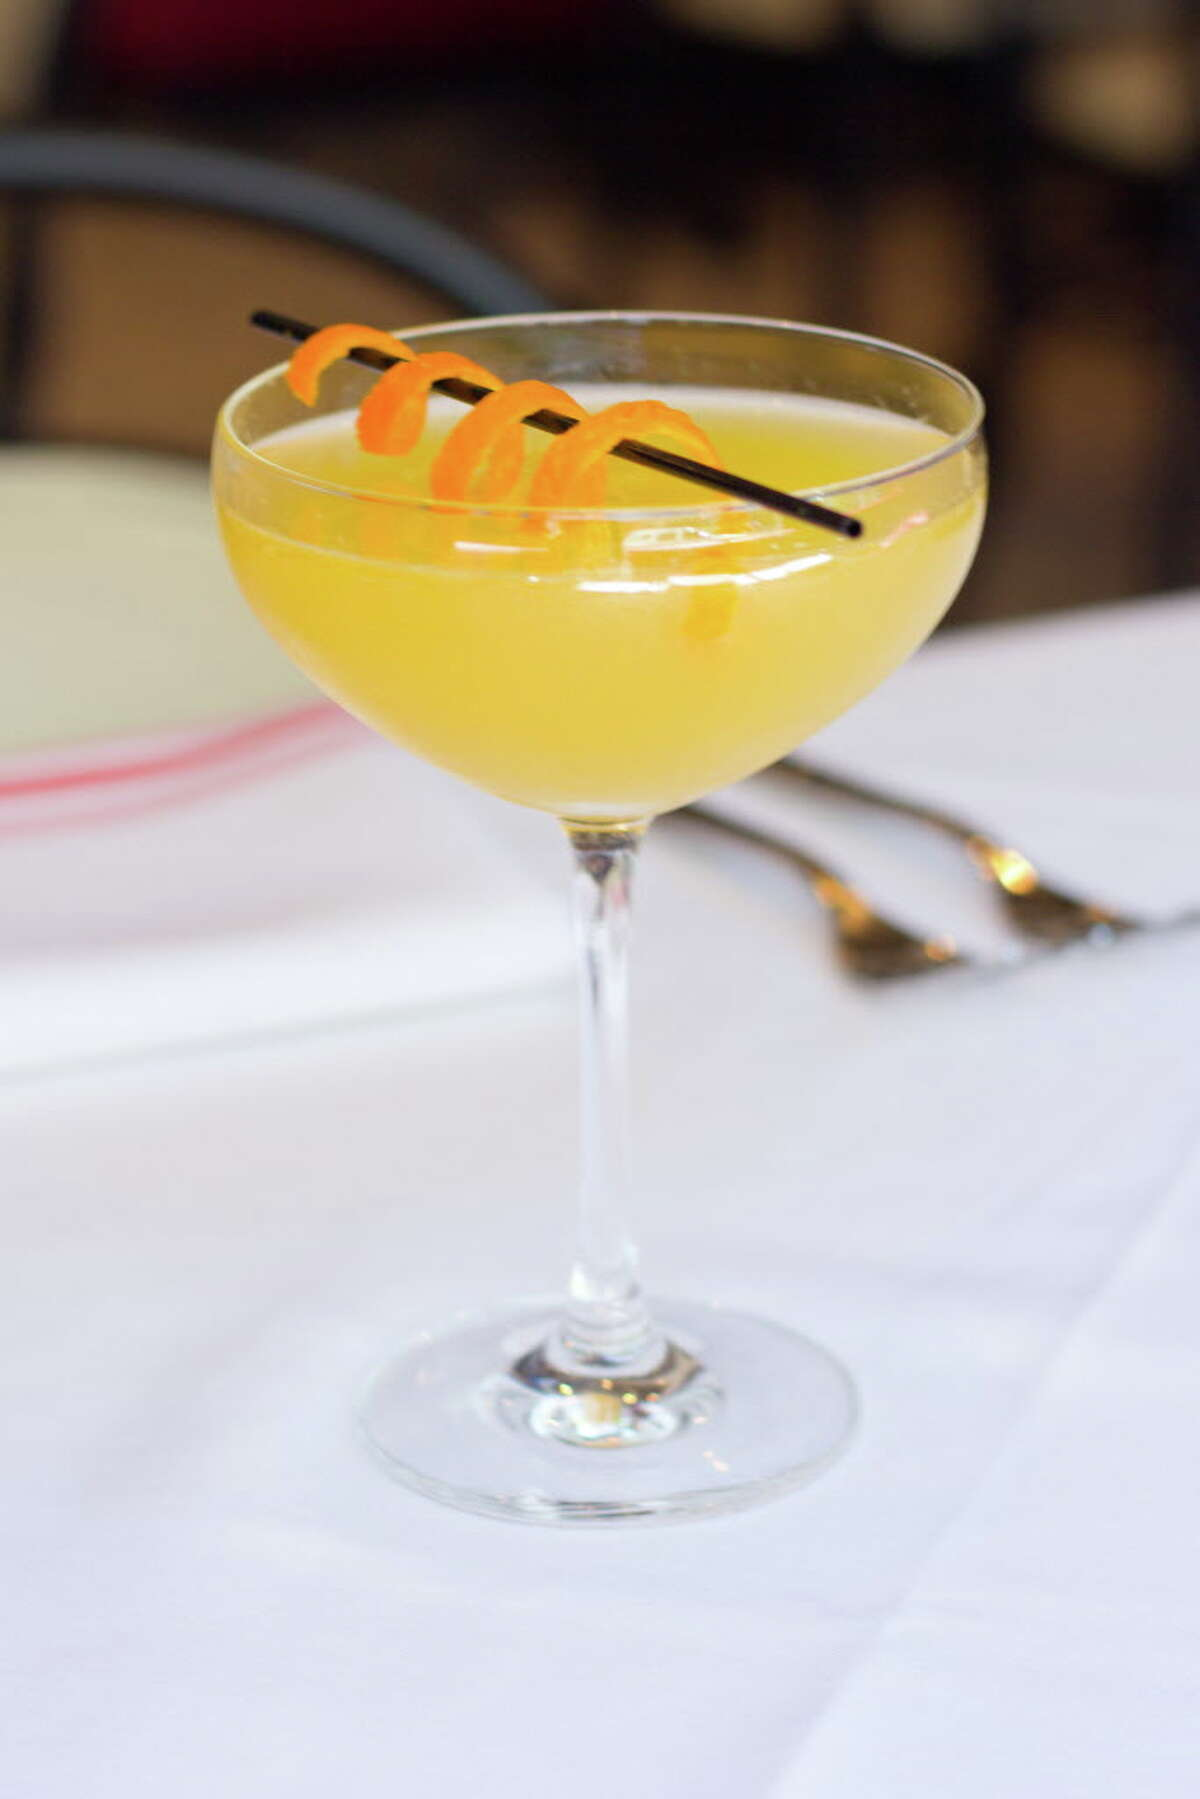 Toulouse Café and Bar in River Oaks District salutes the season with the Peachy Keen.